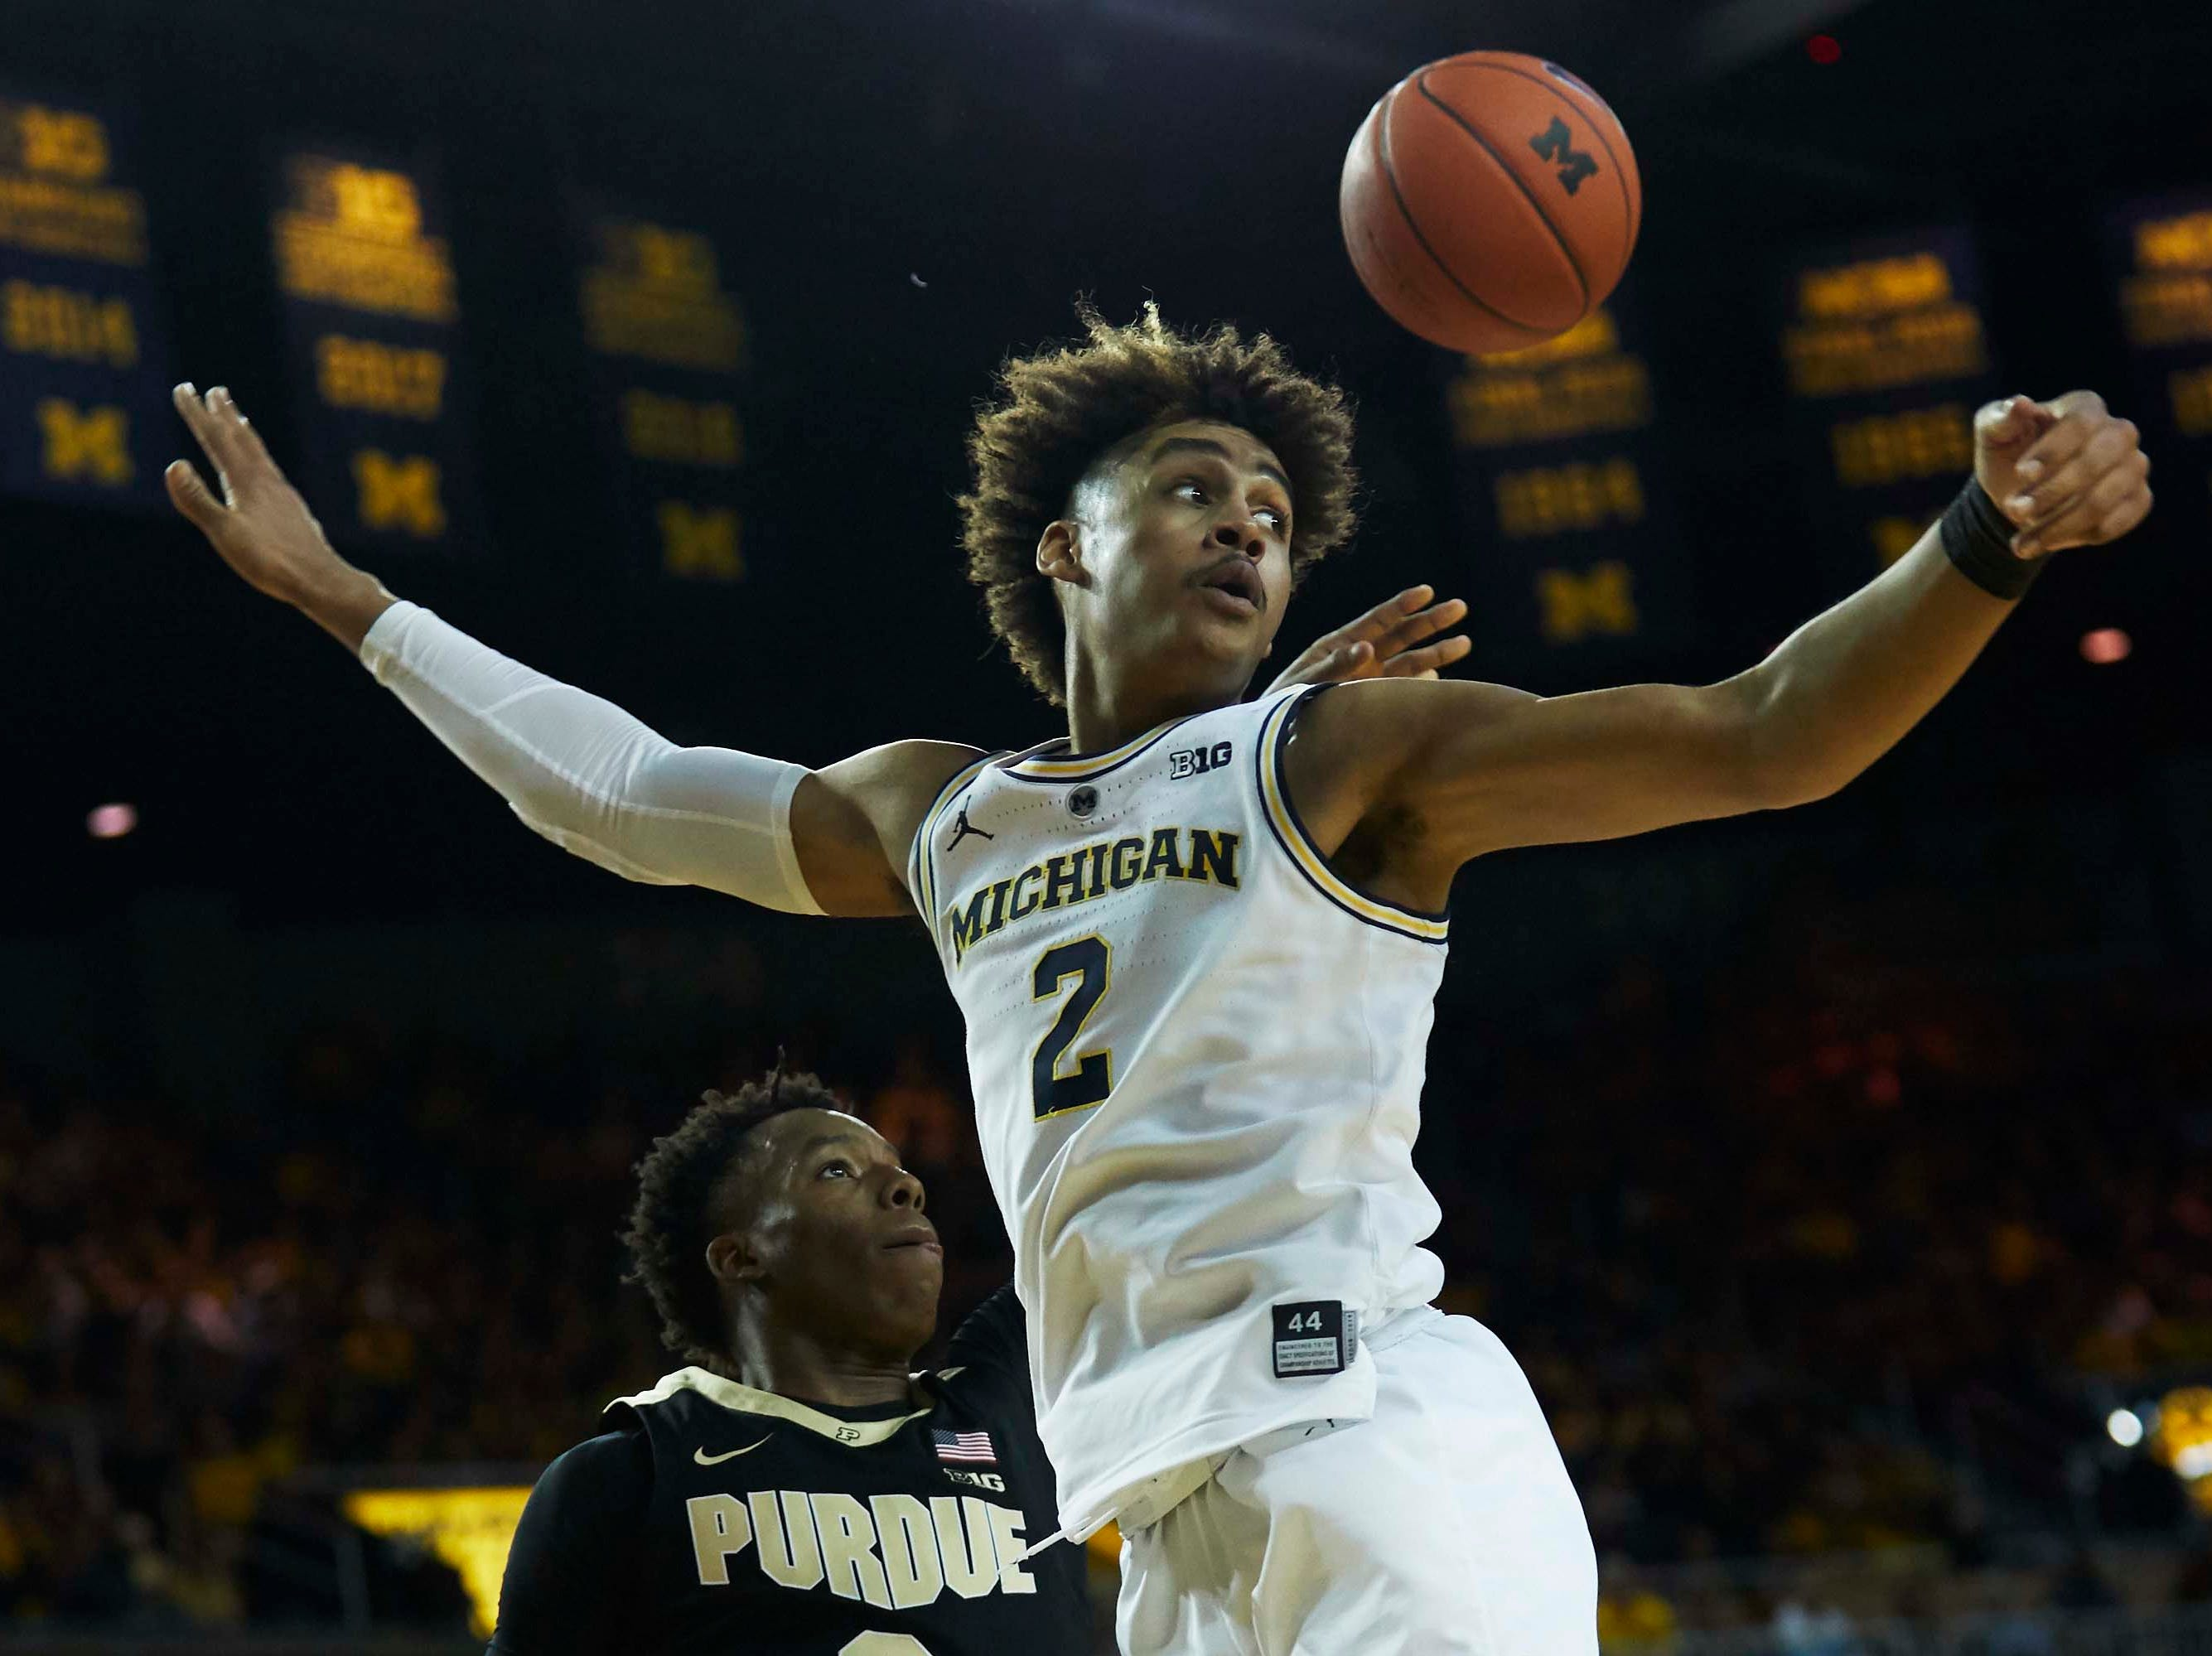 Dec 1, 2018; Ann Arbor, MI, USA; Purdue Boilermakers guard Eric Hunter Jr. (2) passes around Michigan Wolverines guard Jordan Poole (2) in the second half at Crisler Center. Mandatory Credit: Rick Osentoski-USA TODAY Sports